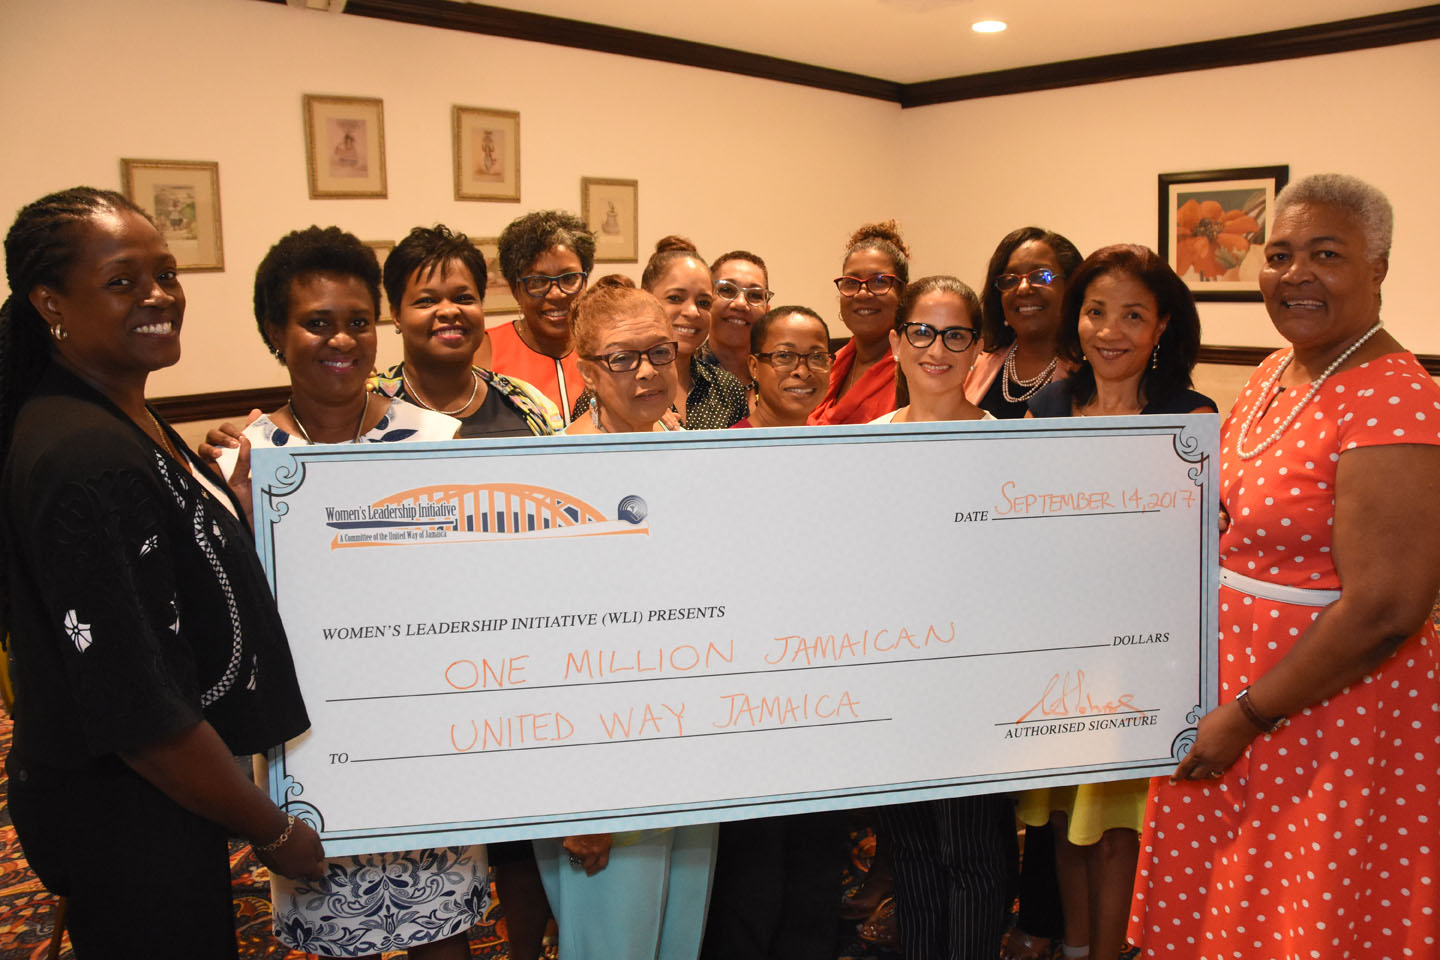 WLI Gives J$1M to United Way of Jamaica